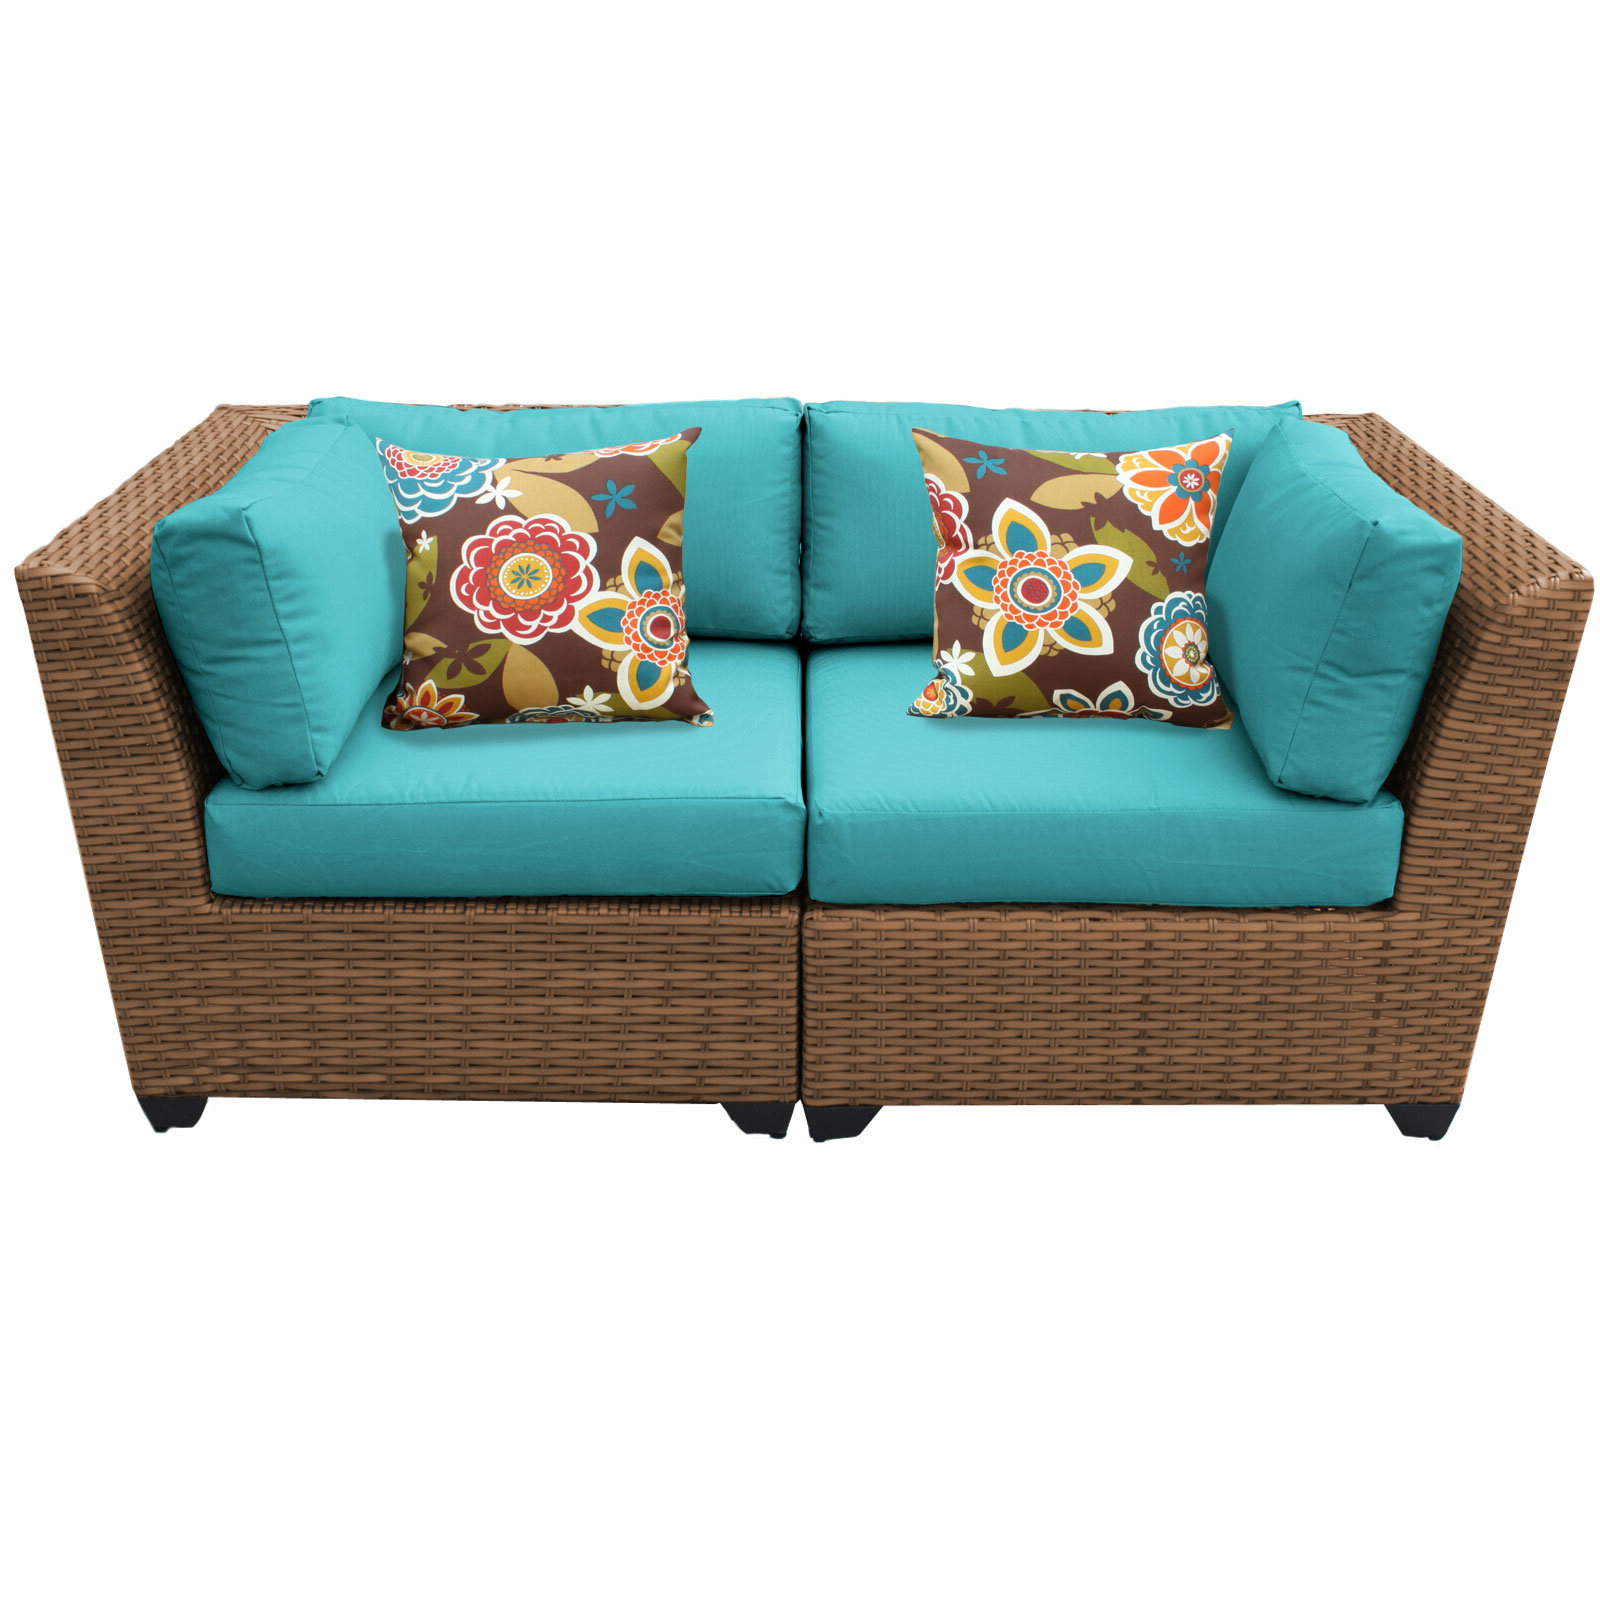 Well Known Waterbury Curved Armless Sofa With Cushions In Waterbury Corner Sofa With Cushions (View 20 of 20)